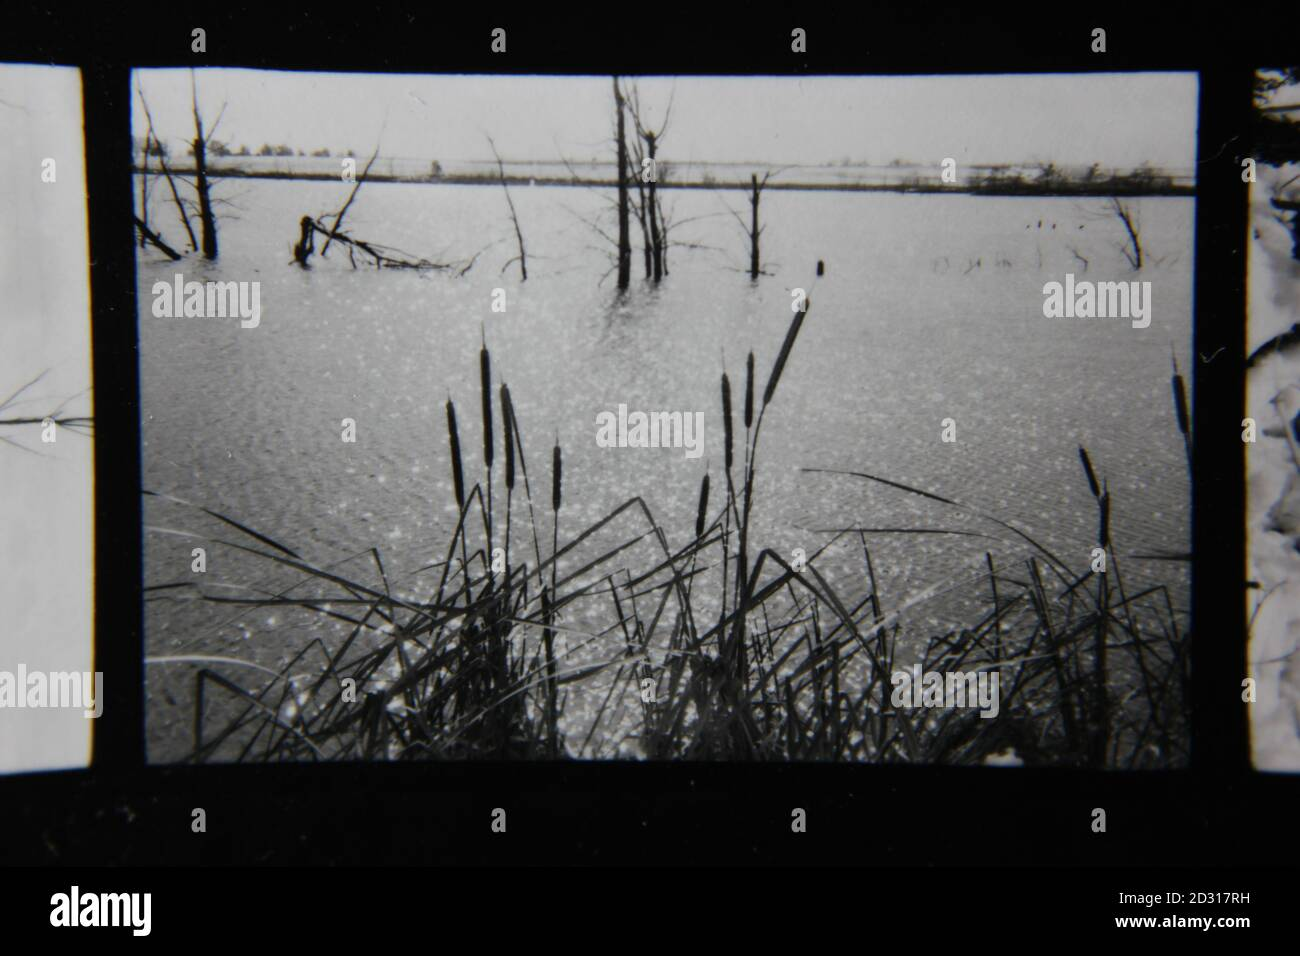 Fine 1970s vintage black and white photography of natural wetlands. Stock Photo